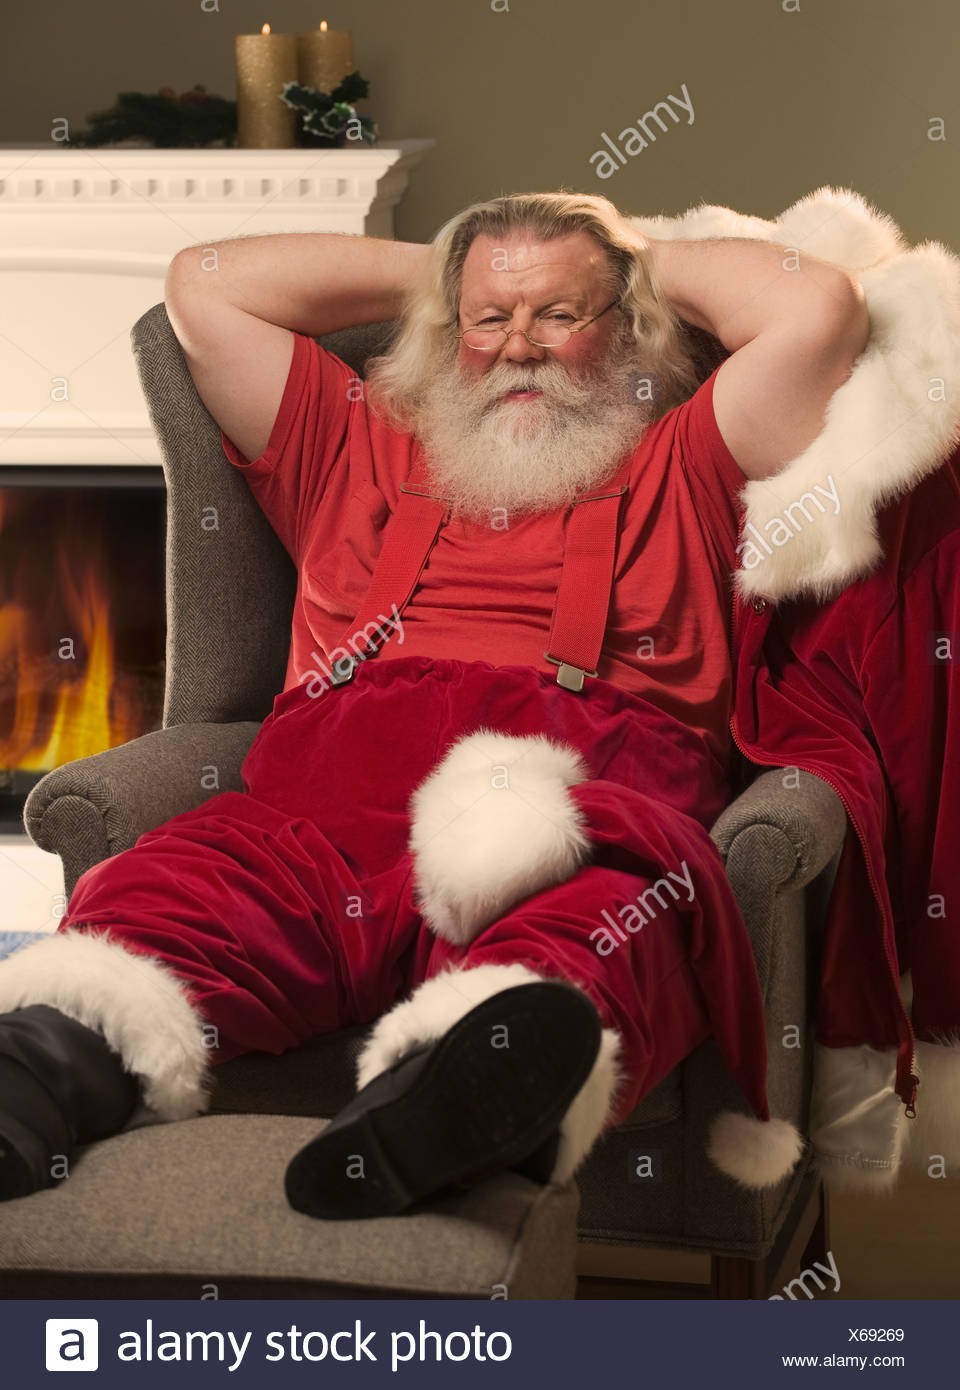 Santa Claus relaxing in armchair - Stock Image